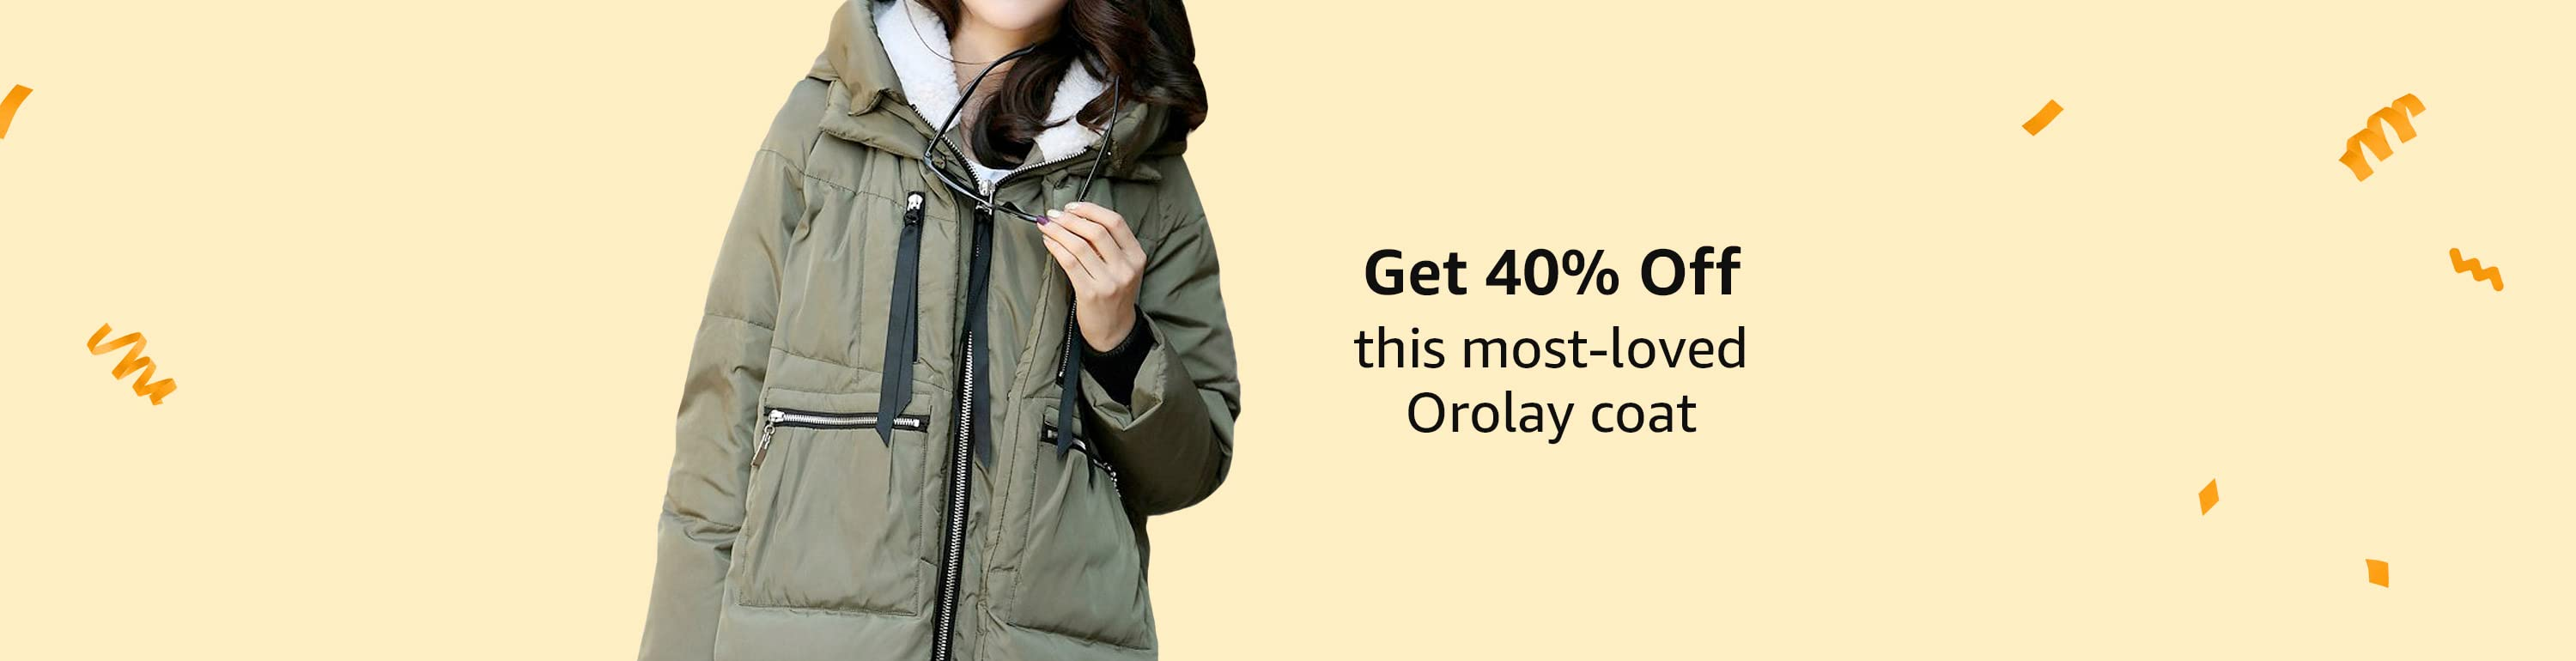 Get 40% off this most-loved Orolay coat